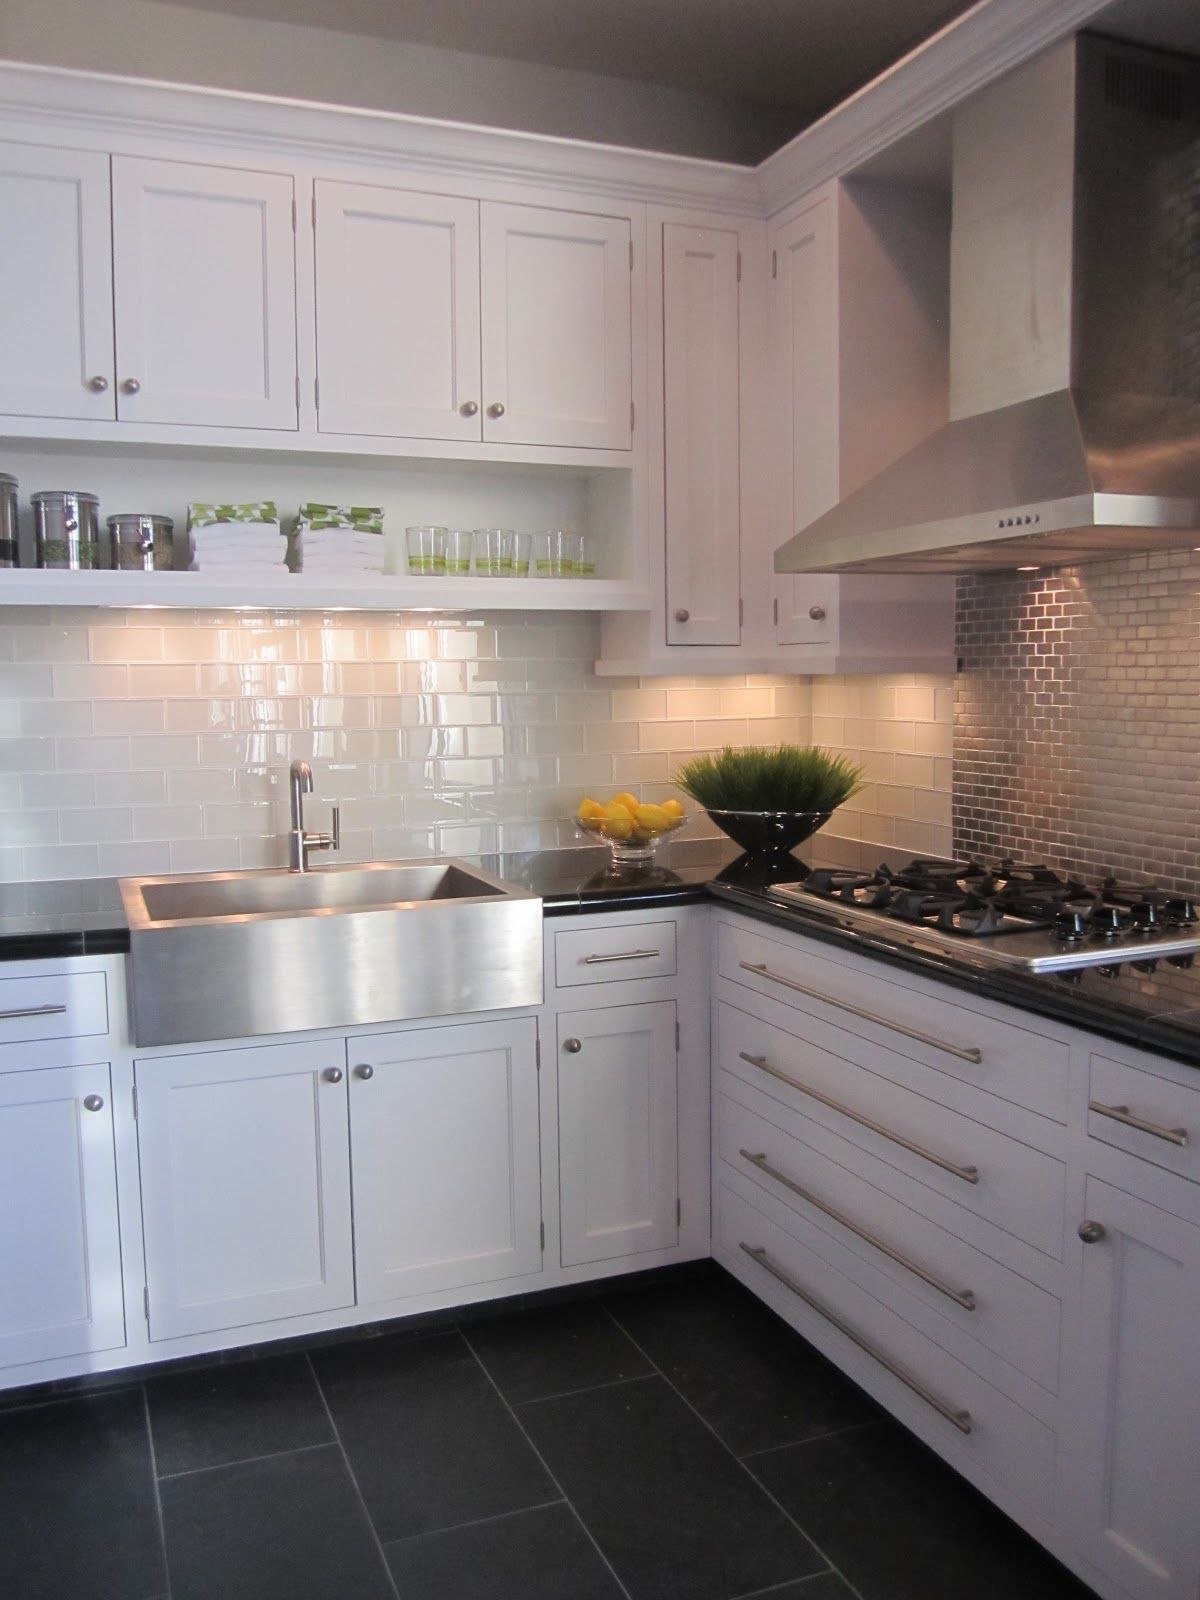 Kitchen White Cabinet Dark Grey Floor Tiles | Lovely Kitchens ...